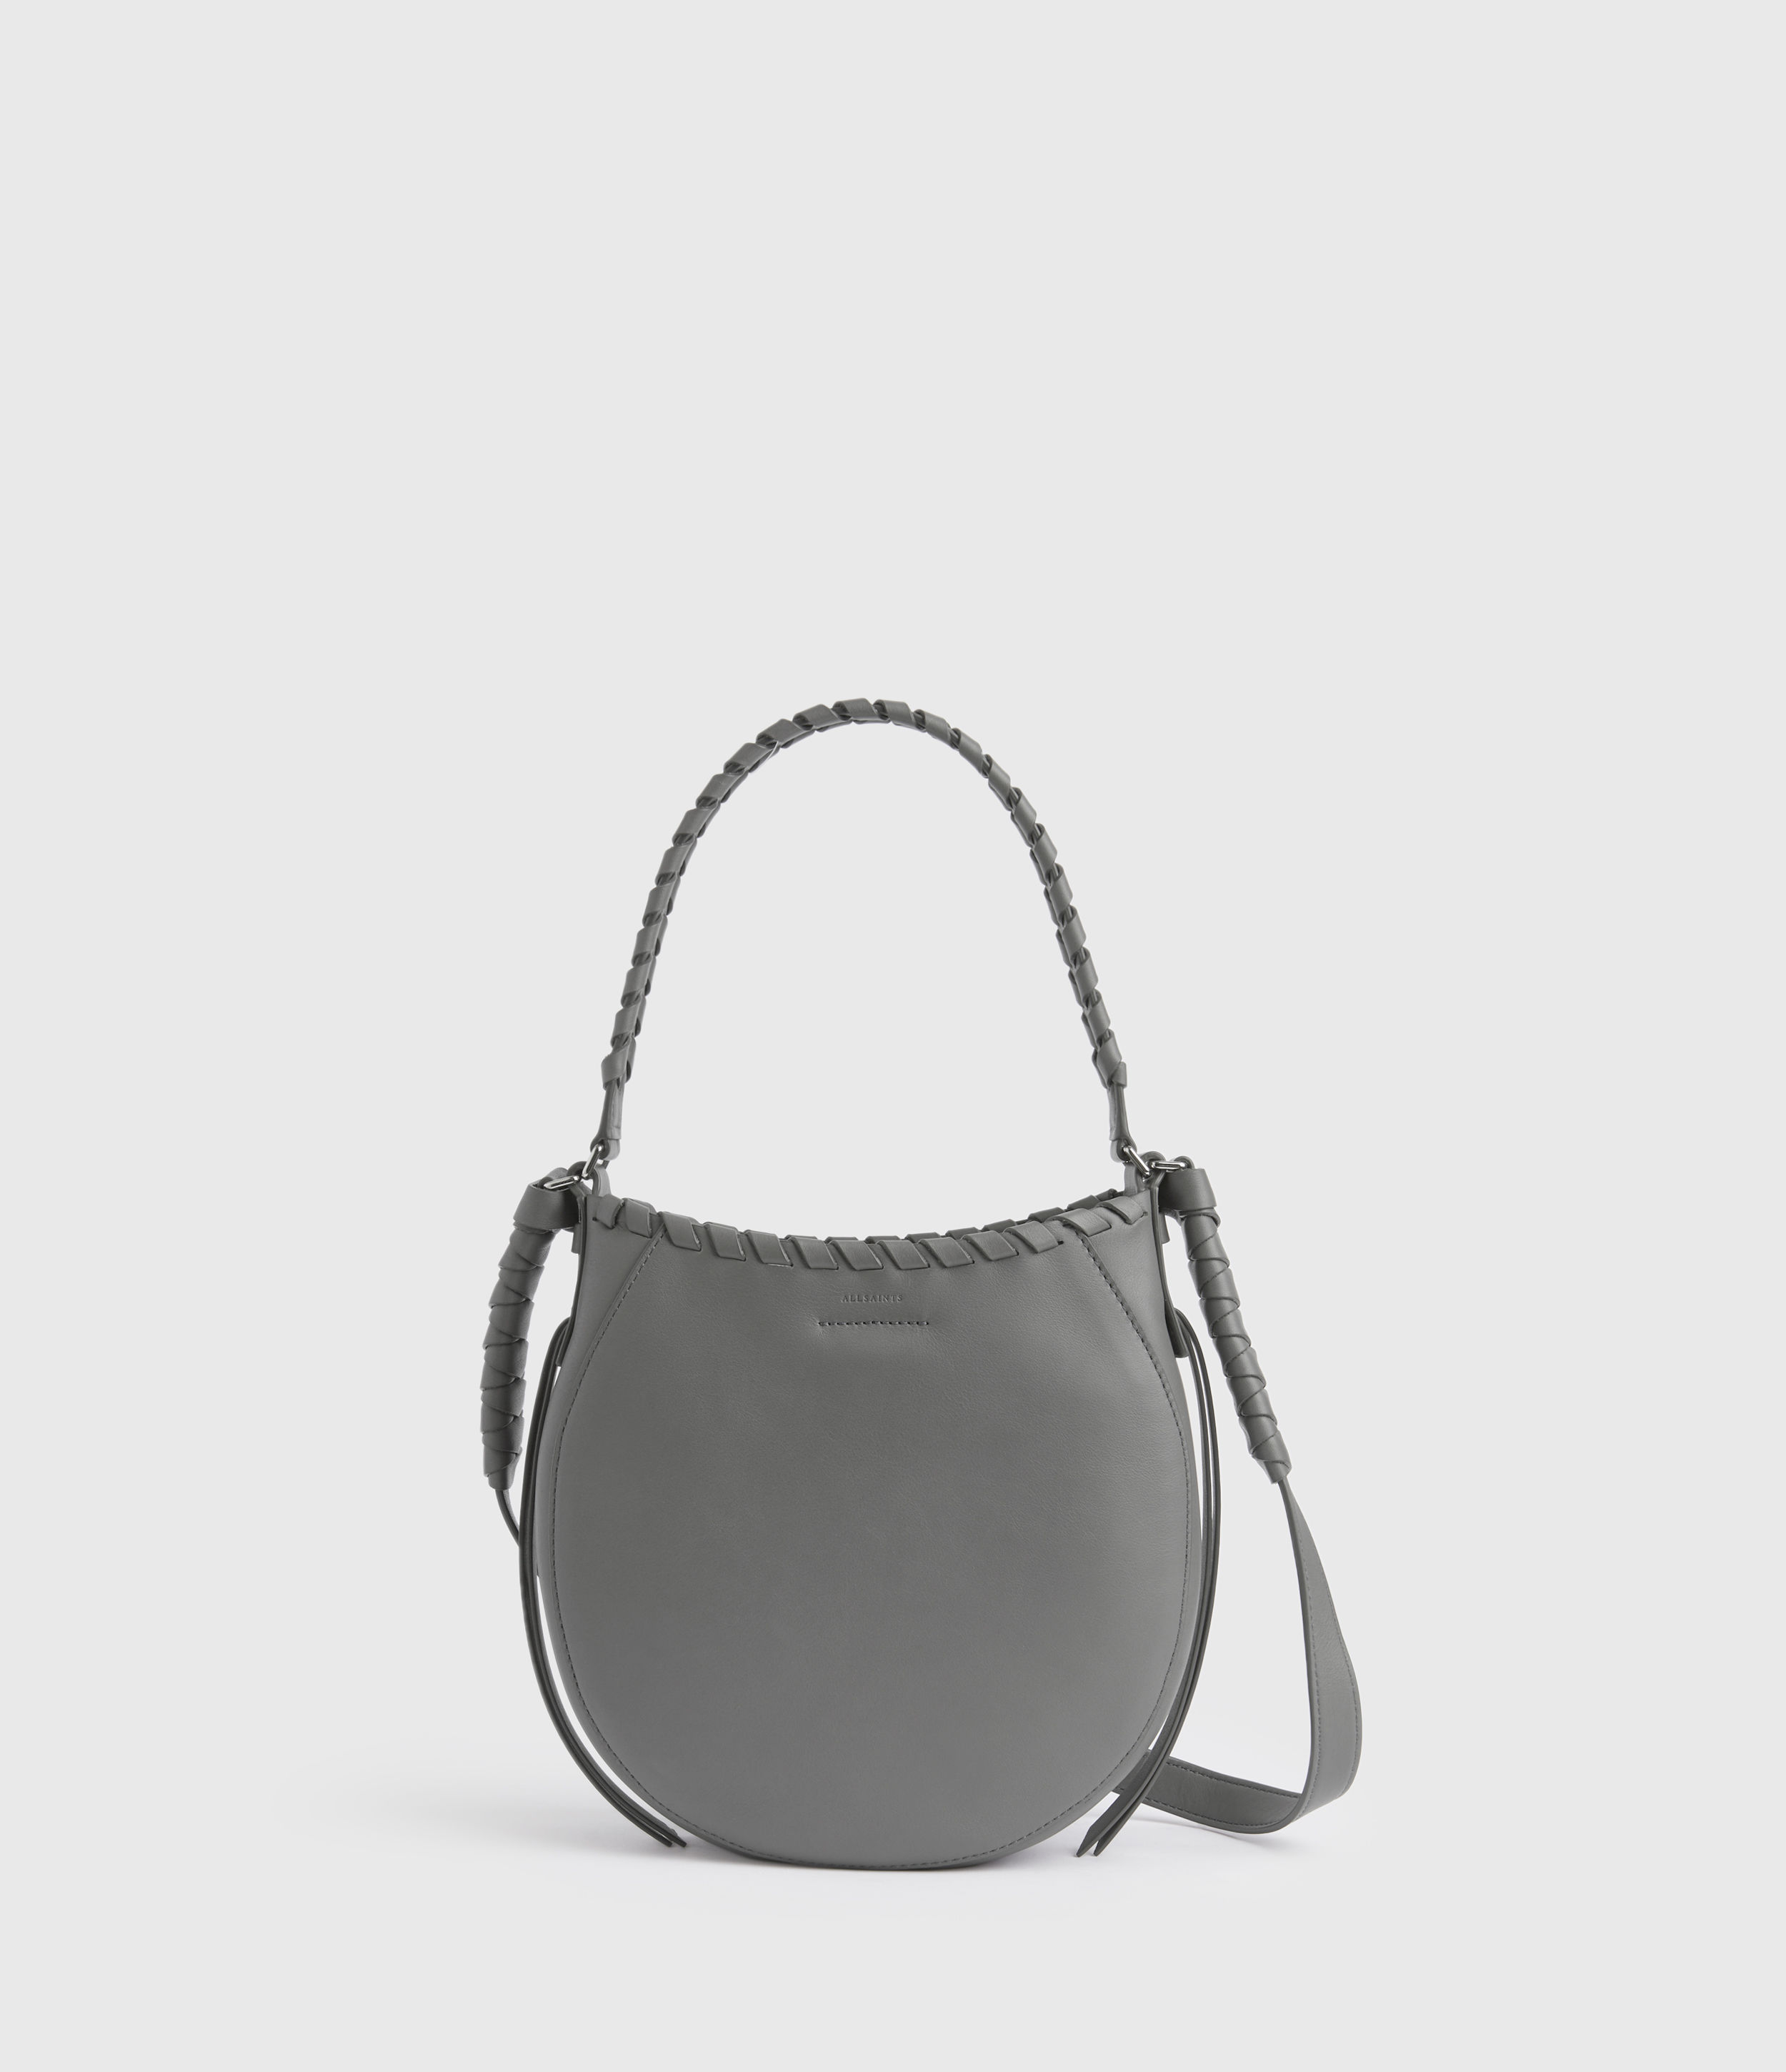 AllSaints Women's Leather Adina Small Hobo Bag, Grey